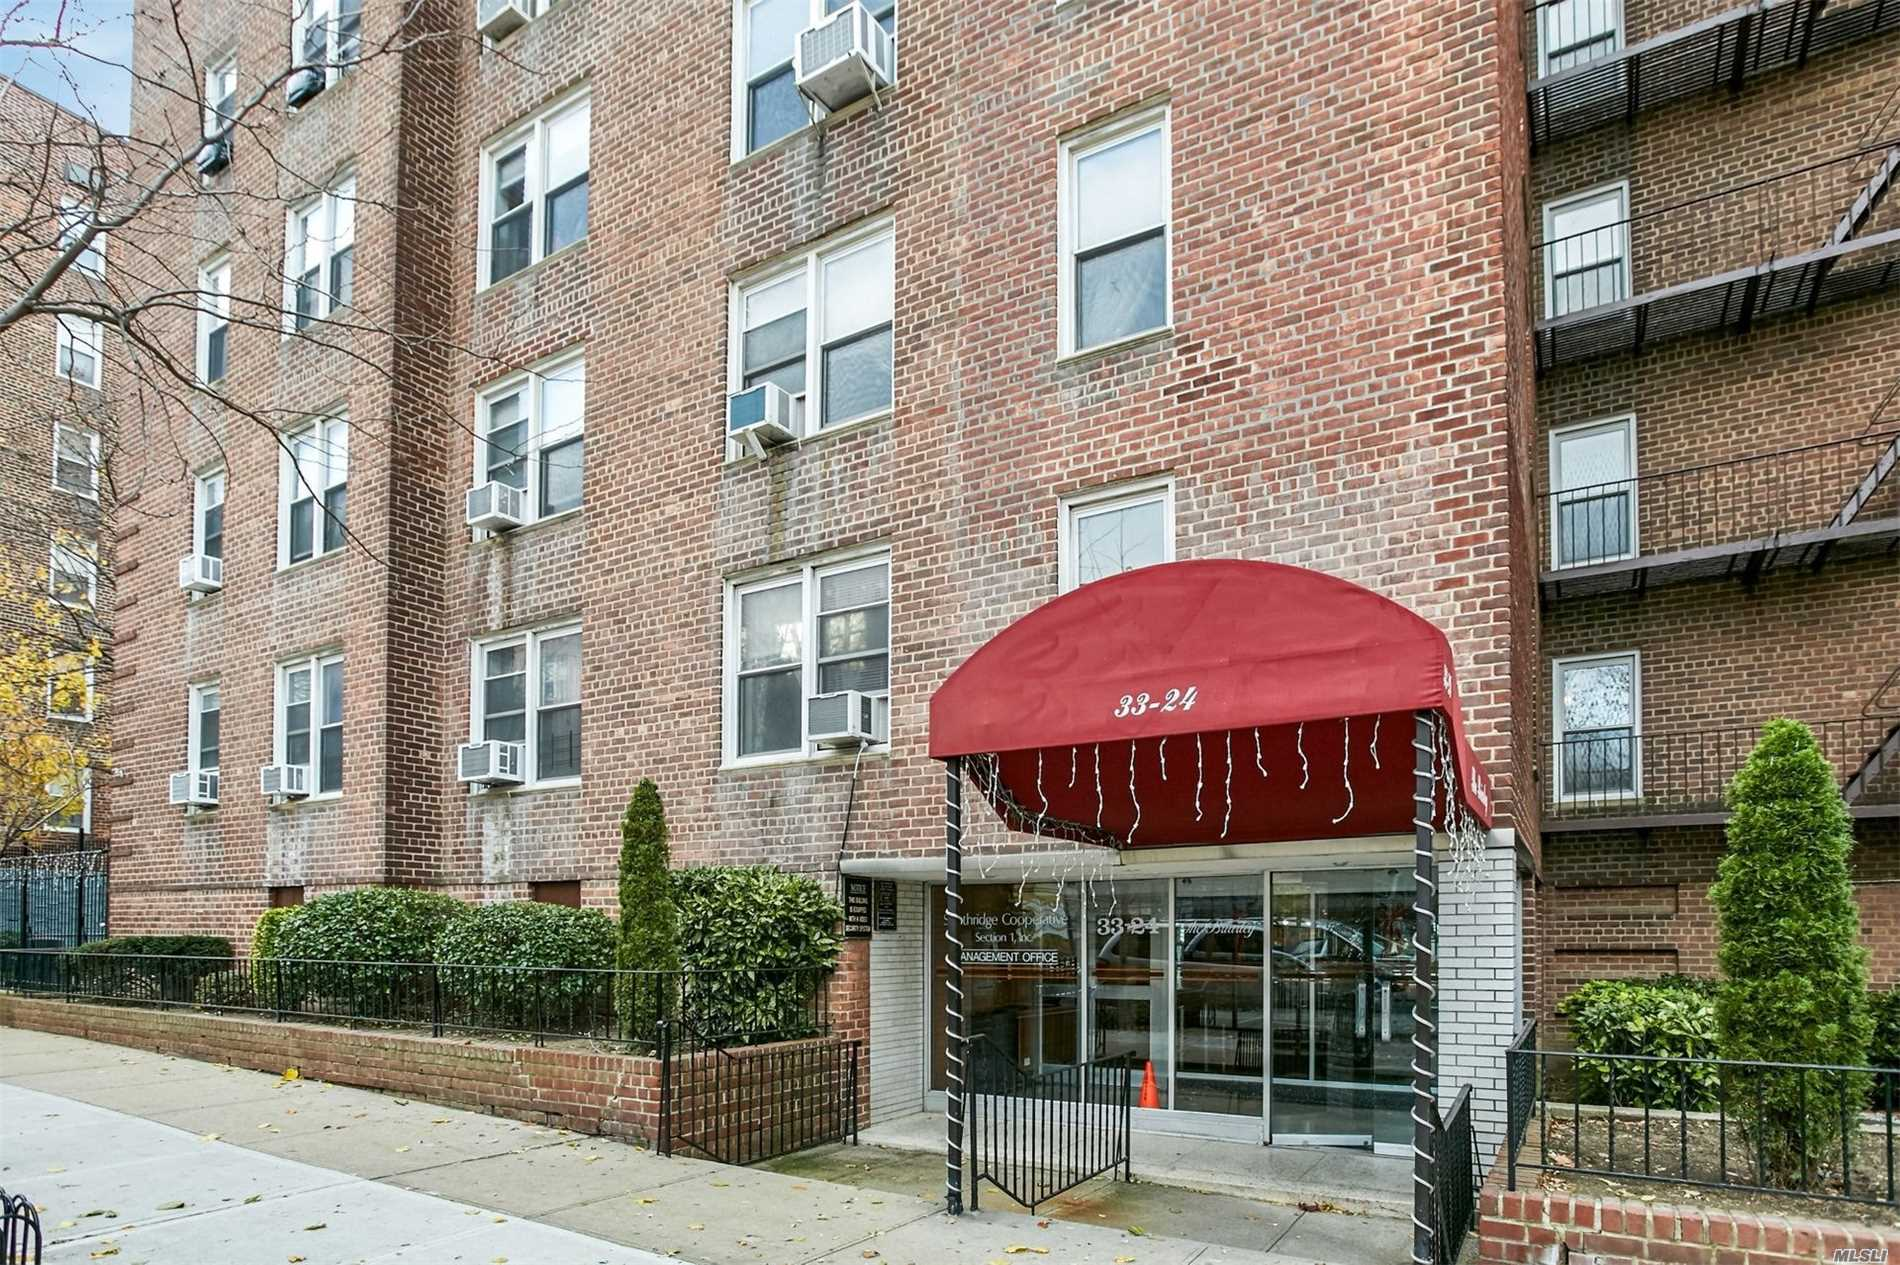 Gorgeous 2 Br/1.5 Bath Coop With A Chefs Eik, Separate Dining Area, Spacious Lr, And Five Closets. The Professionally Designed Kitchen Features Wide Quartz Counter Tops, Cherry Cabinetry With Under-Mounted Lighting, Many Large Drawers To Store Pots And Pans, And Stainless Steel Appliances. The Bedrooms Are Spacious And The Quiet Apartment Faces North And West. The Maintenance Of $777 Includes Heat, Gas, Electric, Water, And Taxes.